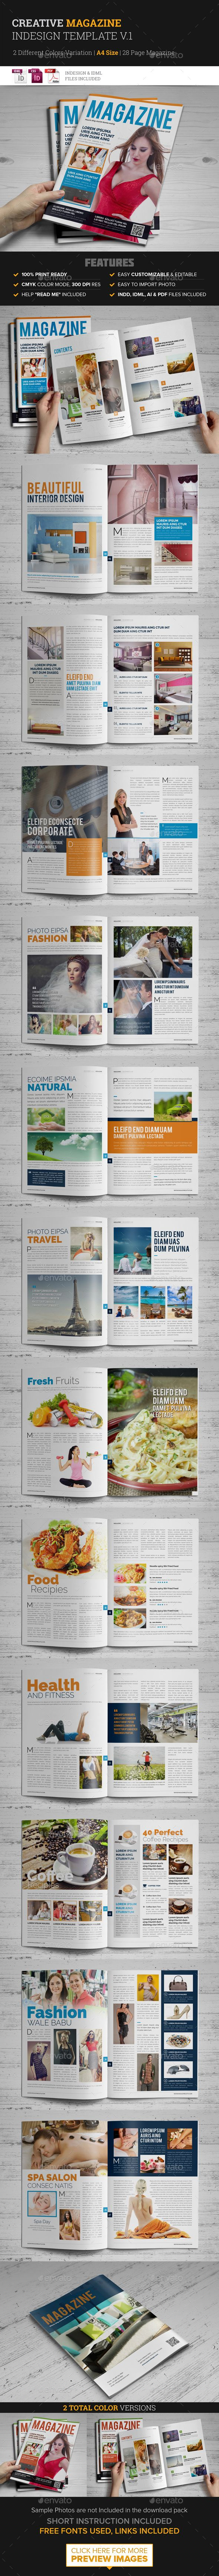 28 Page Magazine InDesign Template #design Download: http://graphicriver.net/item/28-page-magazine-indesign-template-v1/14101533?ref=ksioks